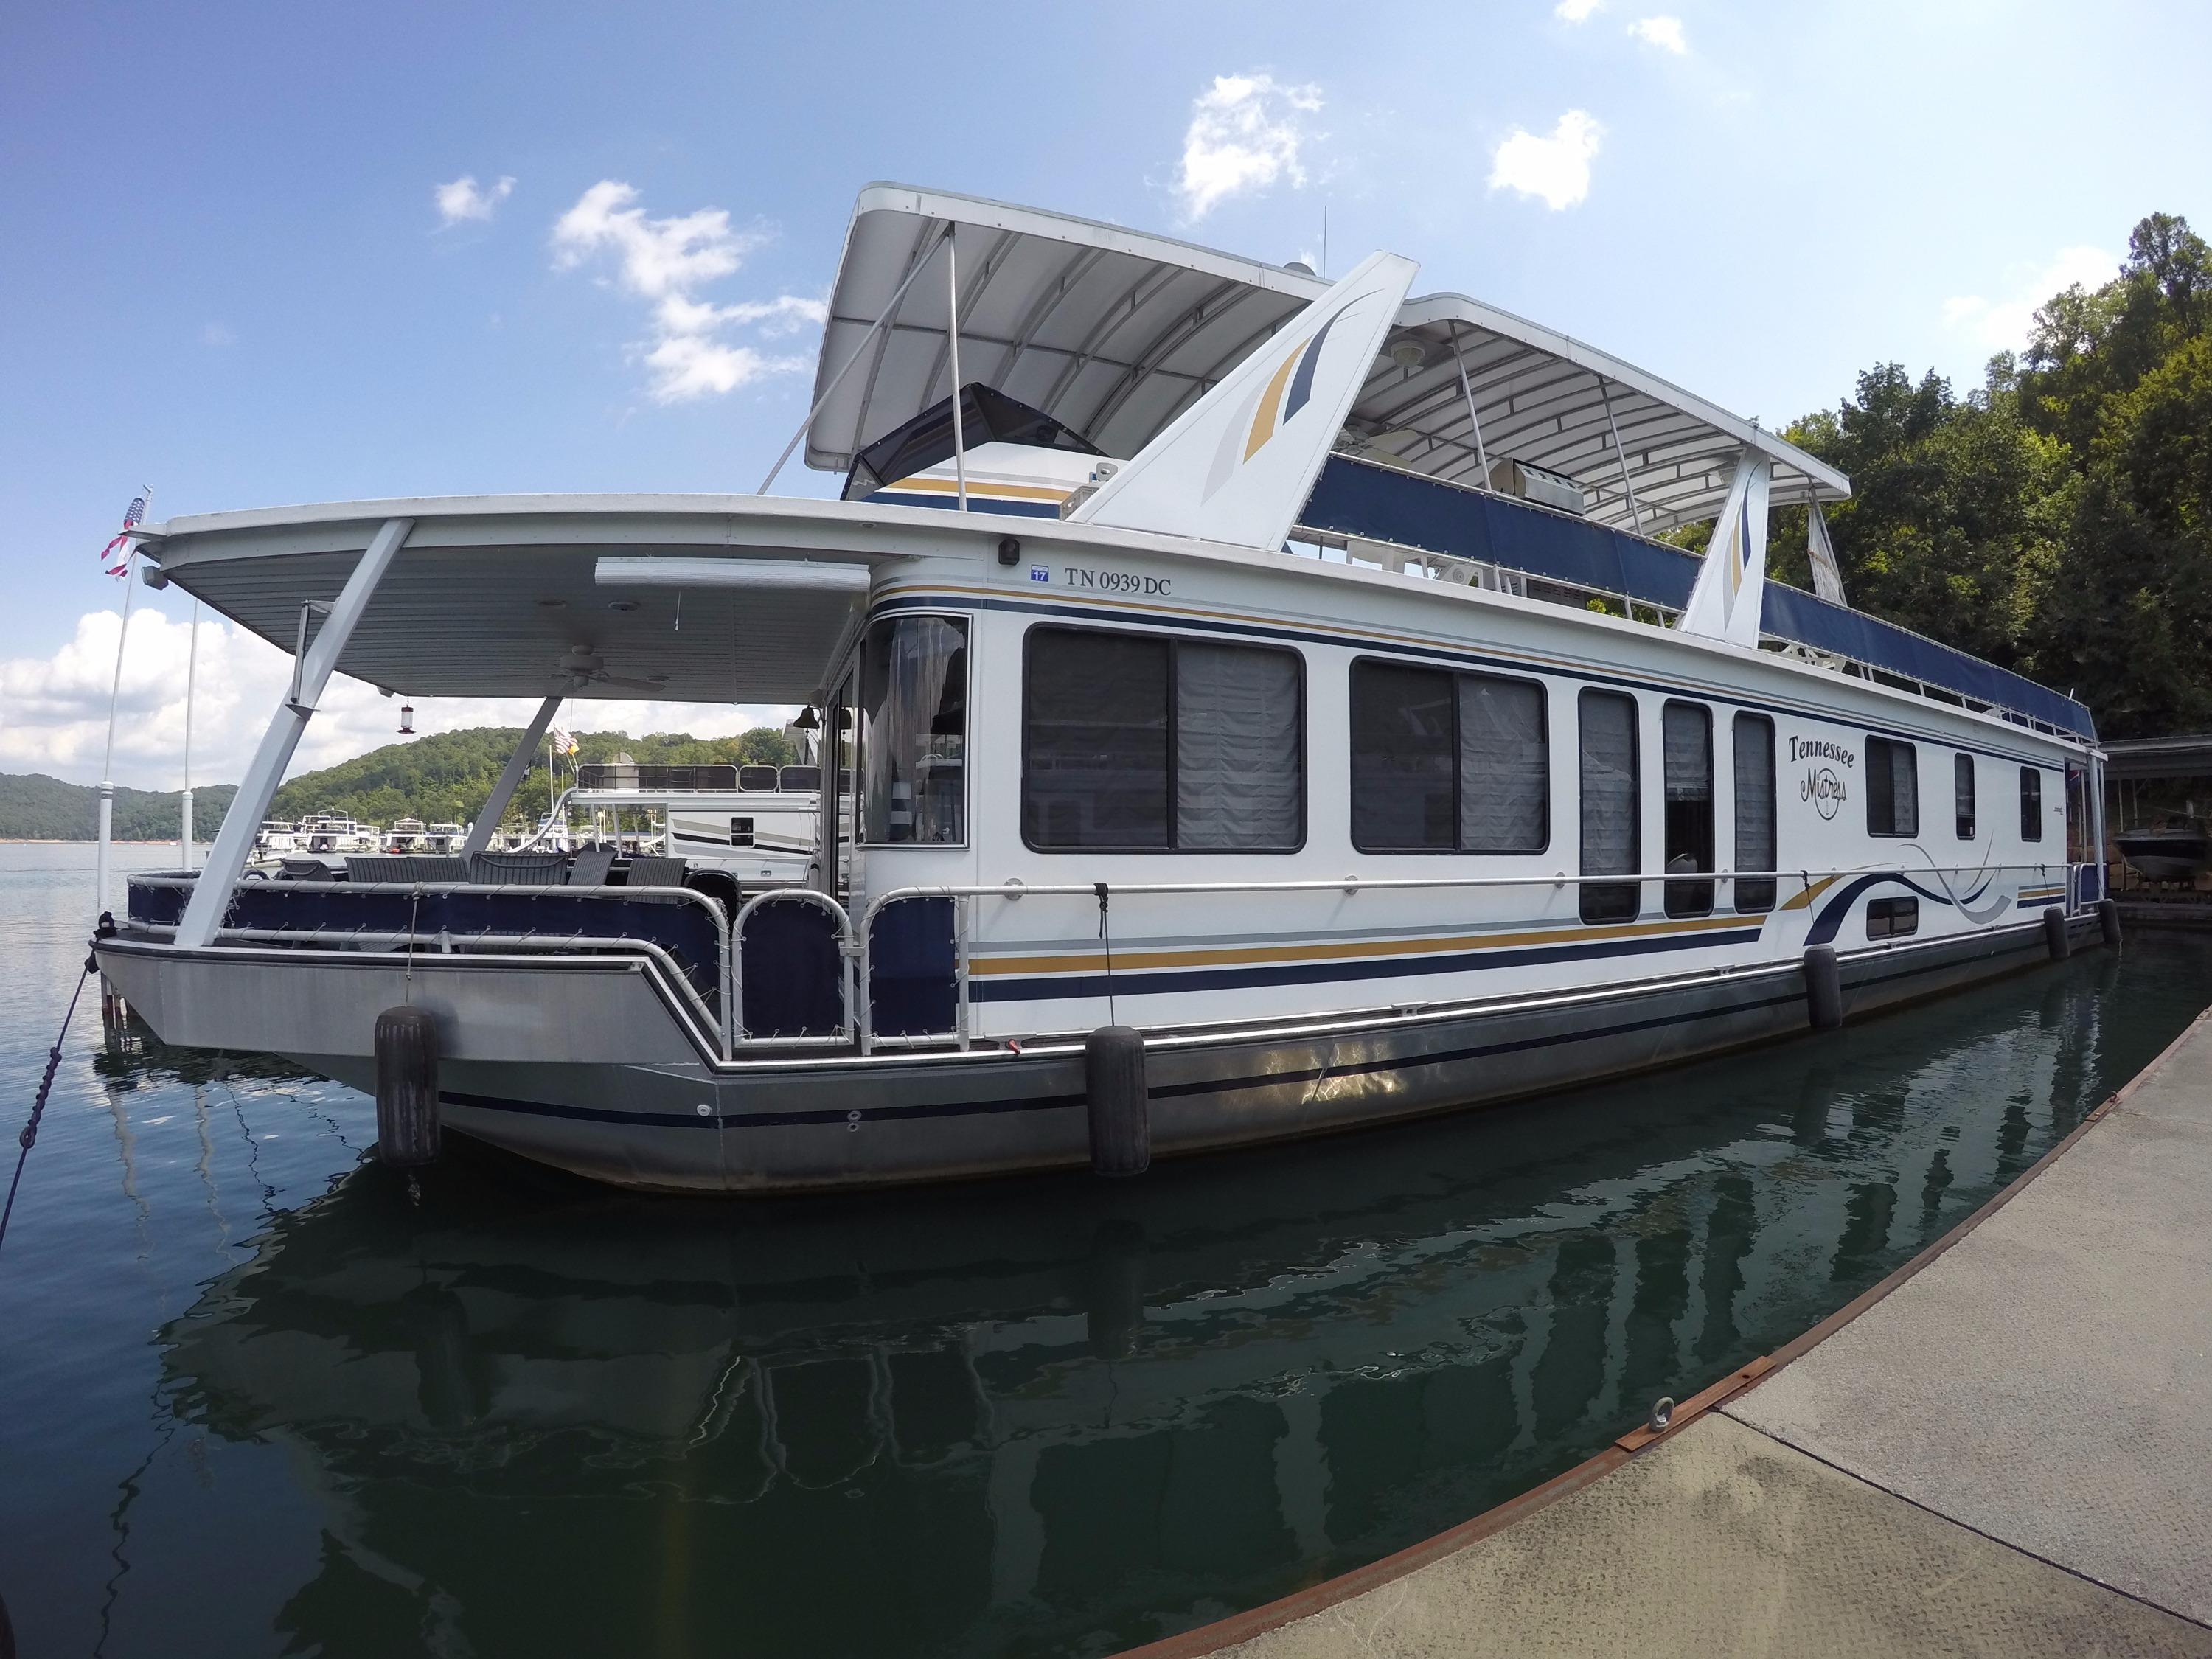 Pontoon houseboat manufacturers home built pontoon boat - 2000 Stardust Cruisers 16 X 77 Widebody Power Boat For Sale